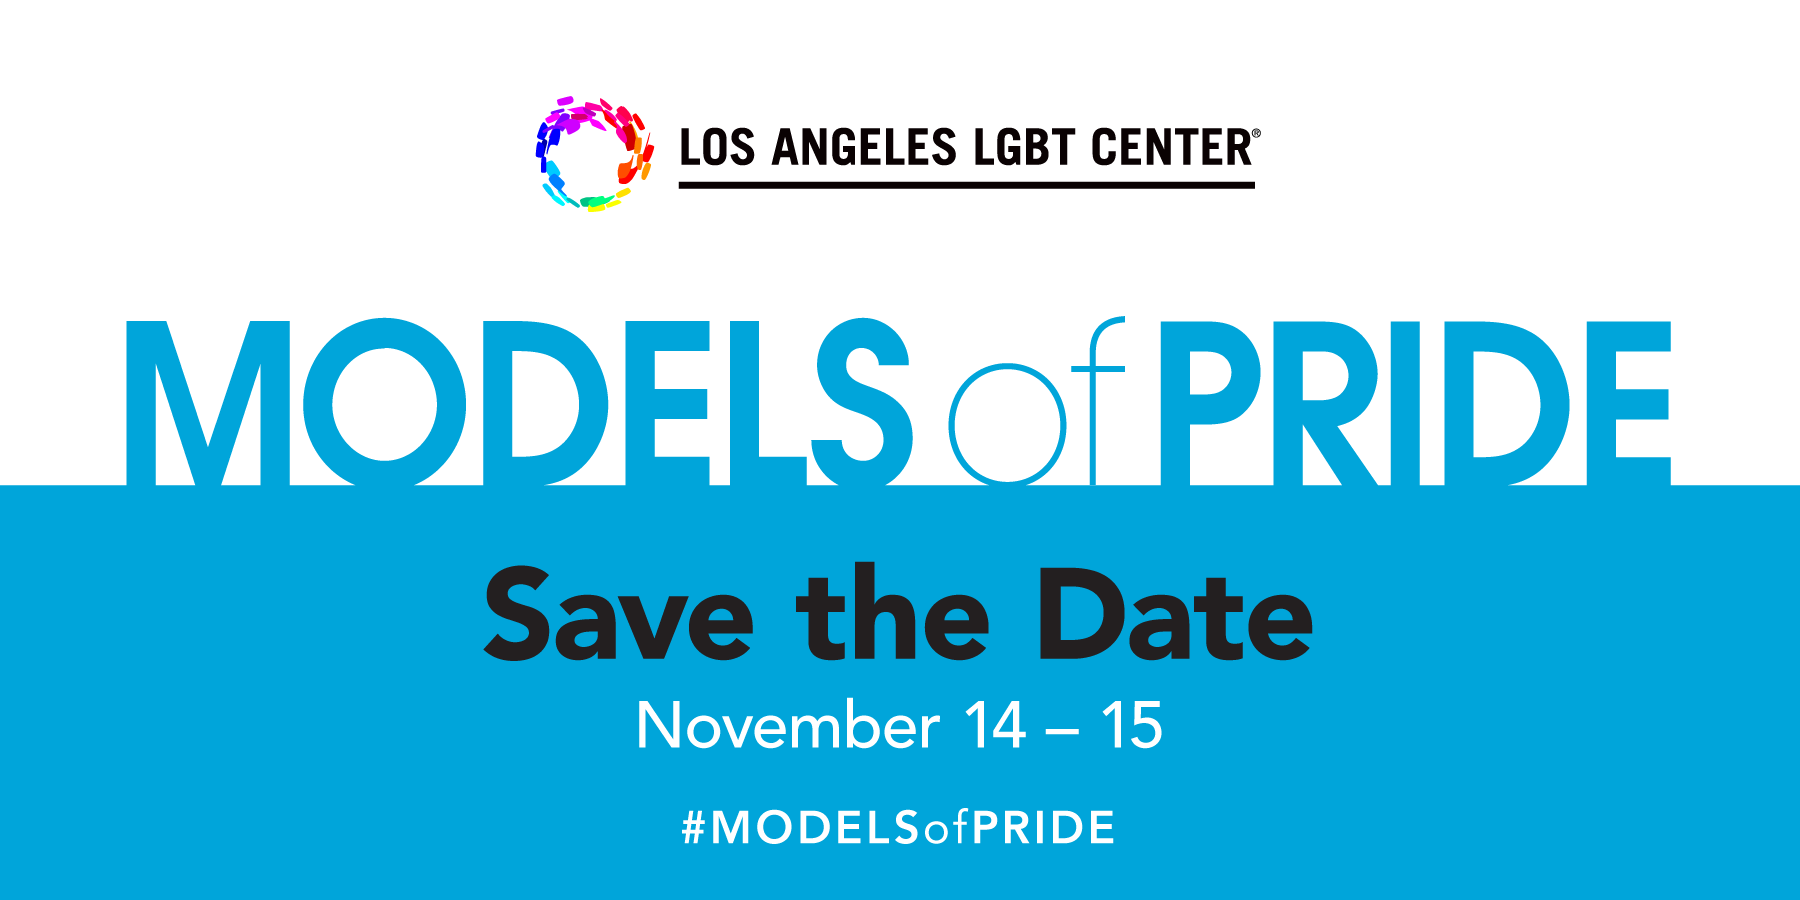 Save the Date November 14-15